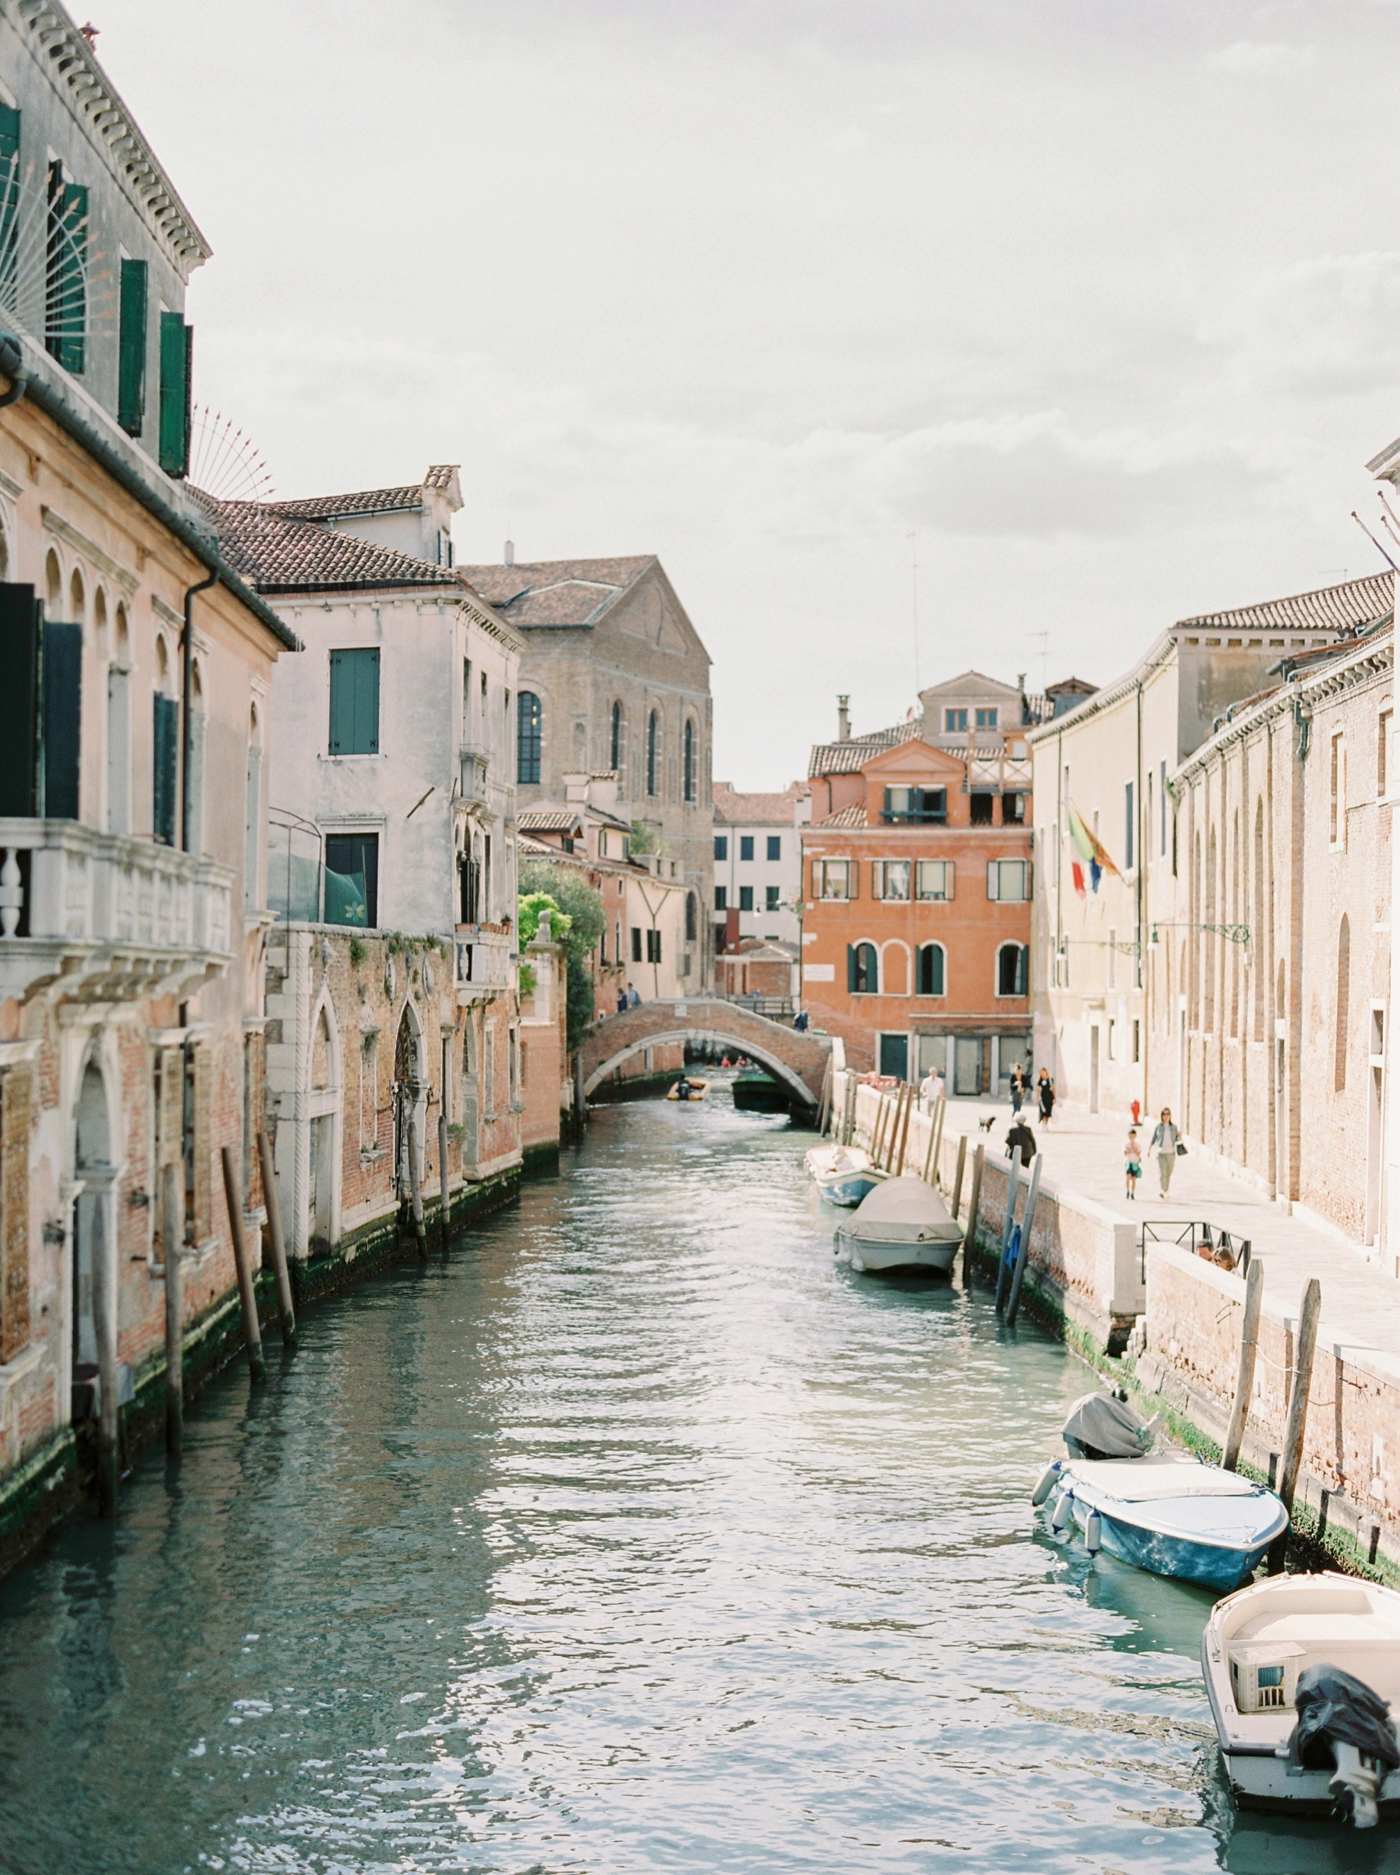 Venice italy wedding photographers | couples honeymoon session | exploring venice canals with film photographer justine milton | travel art prints